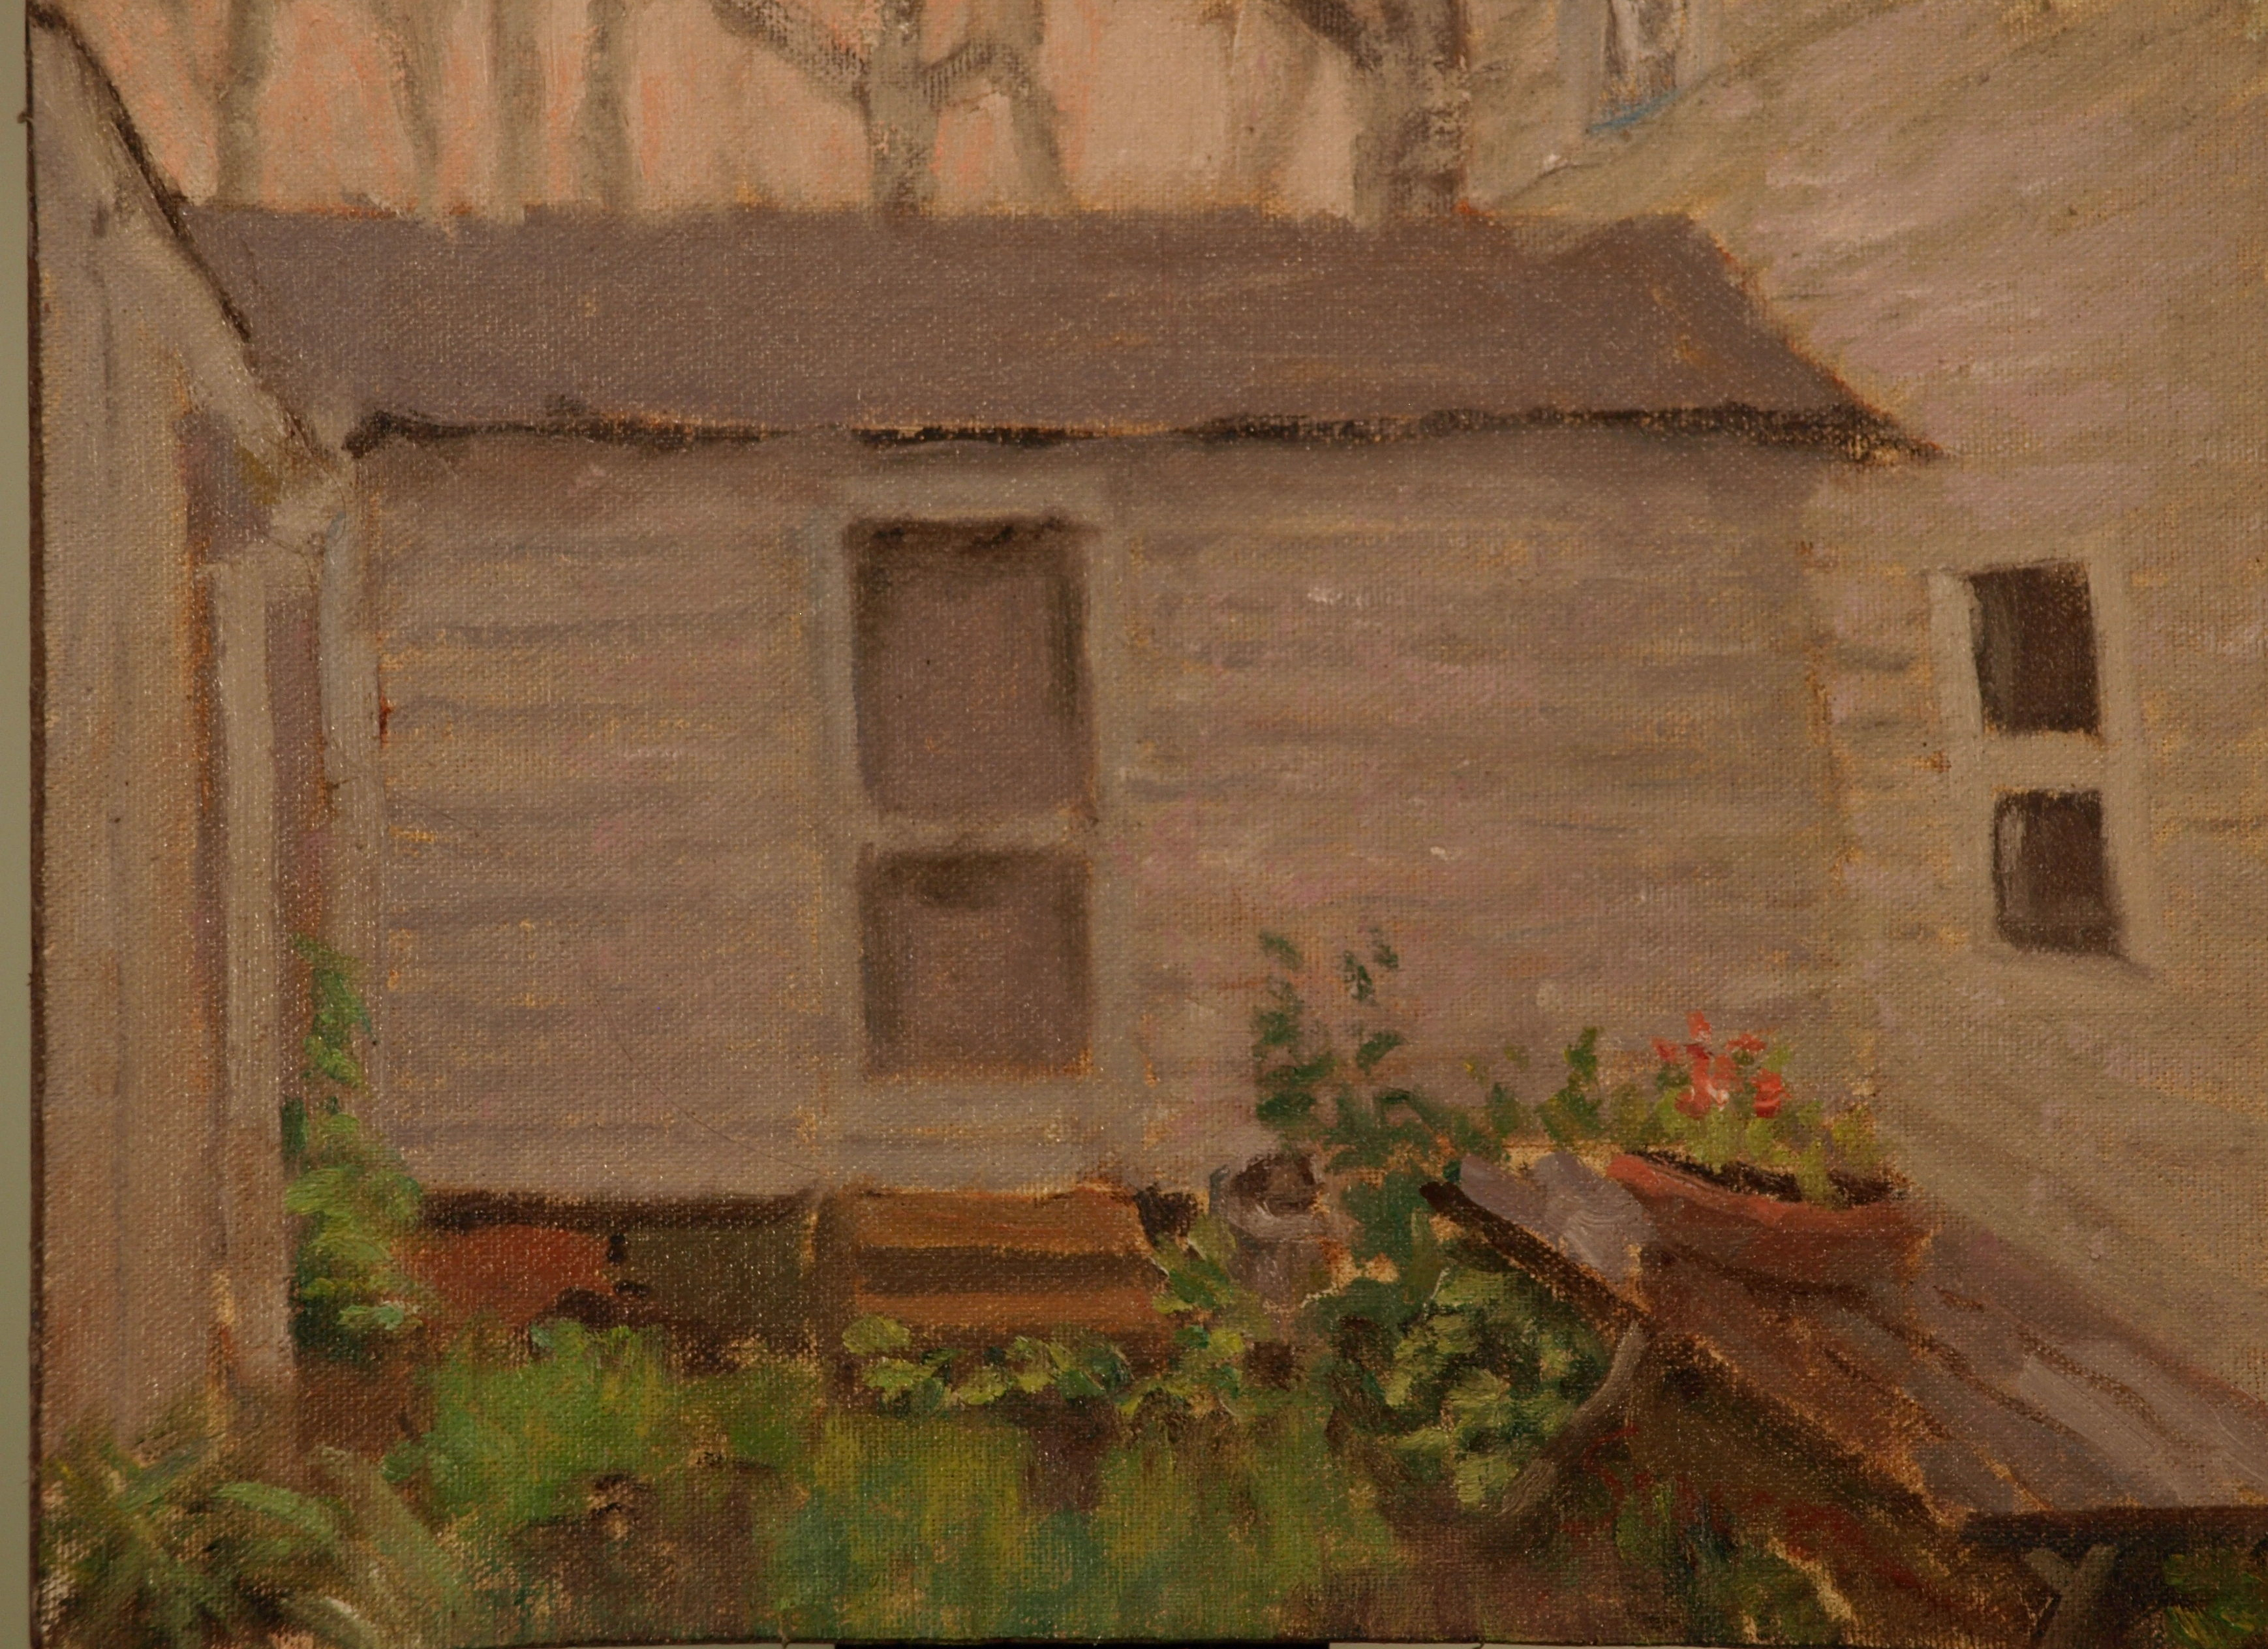 Artist's House - Rain, Oil on Canvas on Panel, 9 x 12 inches, by Richard Stalter, $225